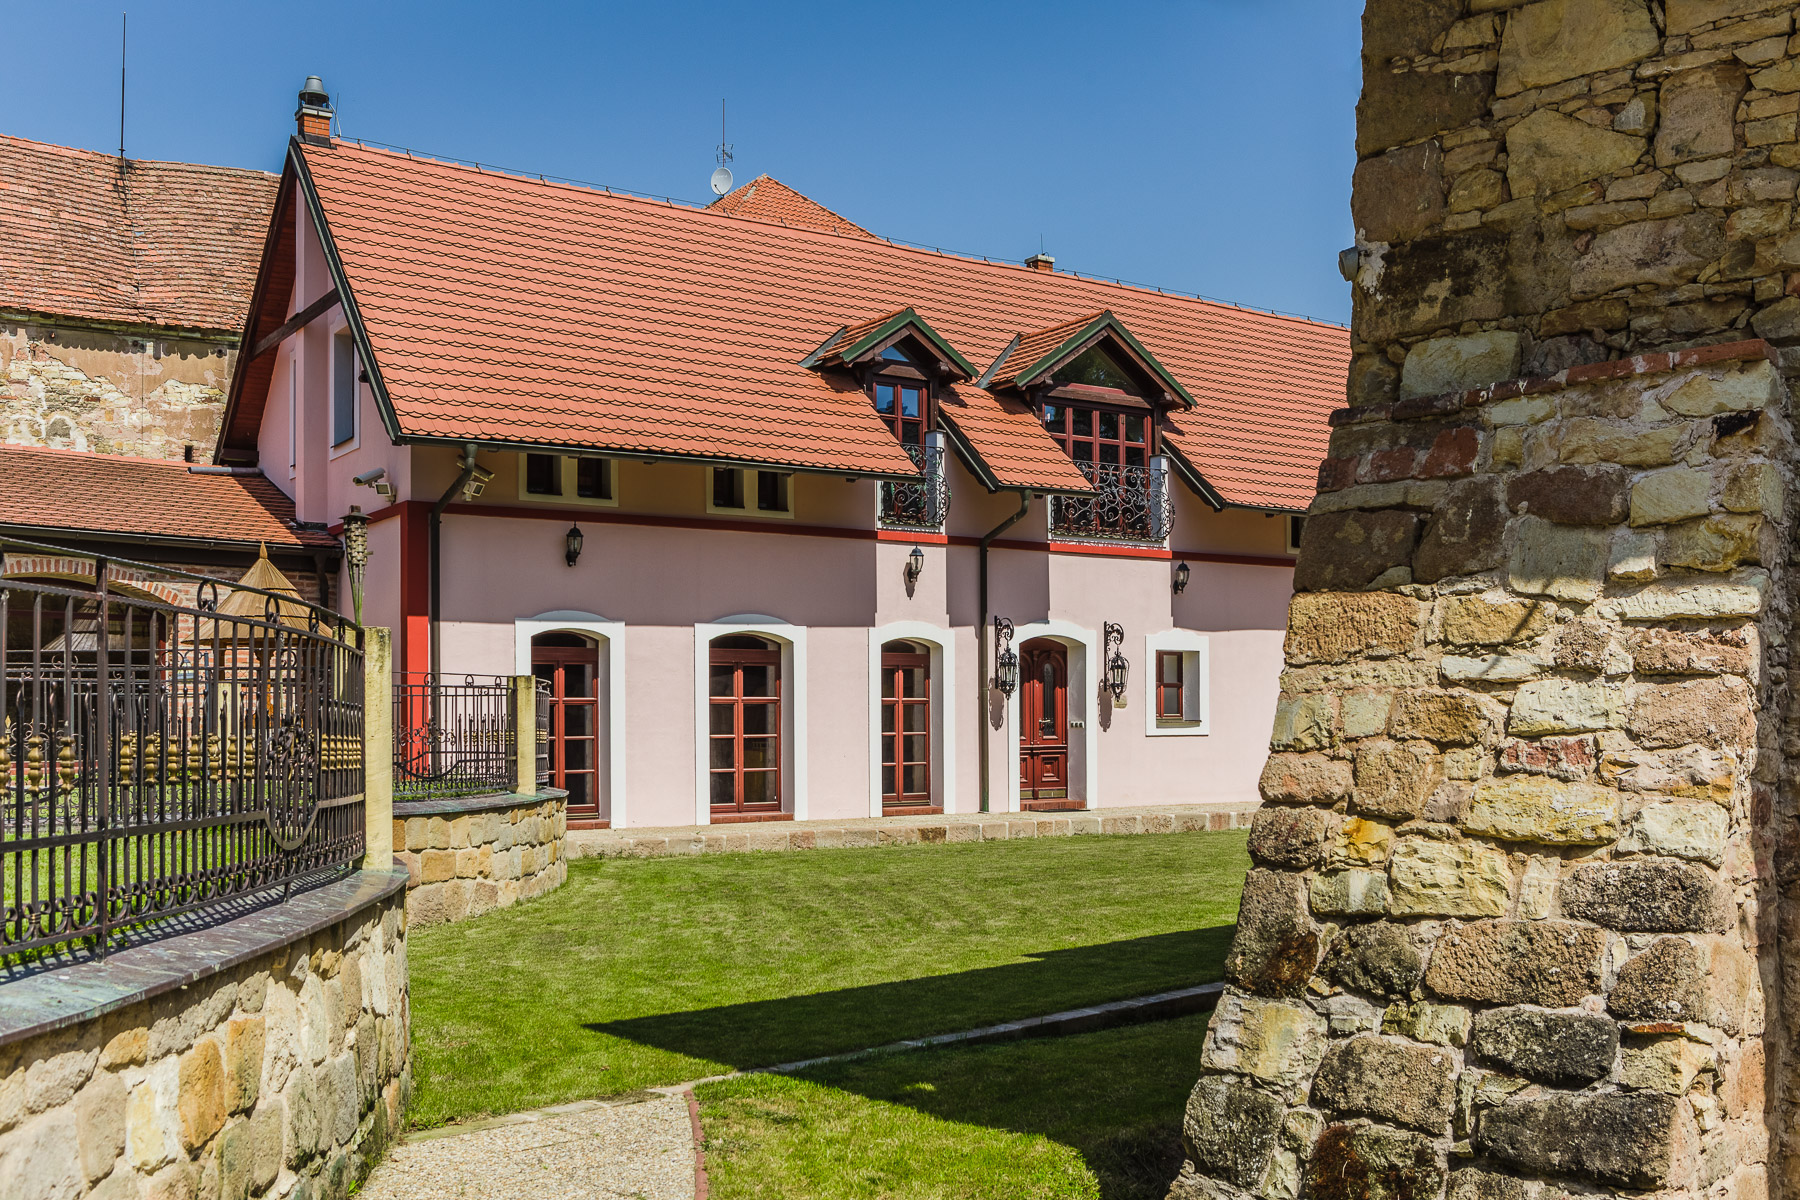 Single Family Home for Sale at Country farm with historical charm in Central Bohemia Neprobylice Other Central Bohemia, Central Bohemia 27375 Czech Republic